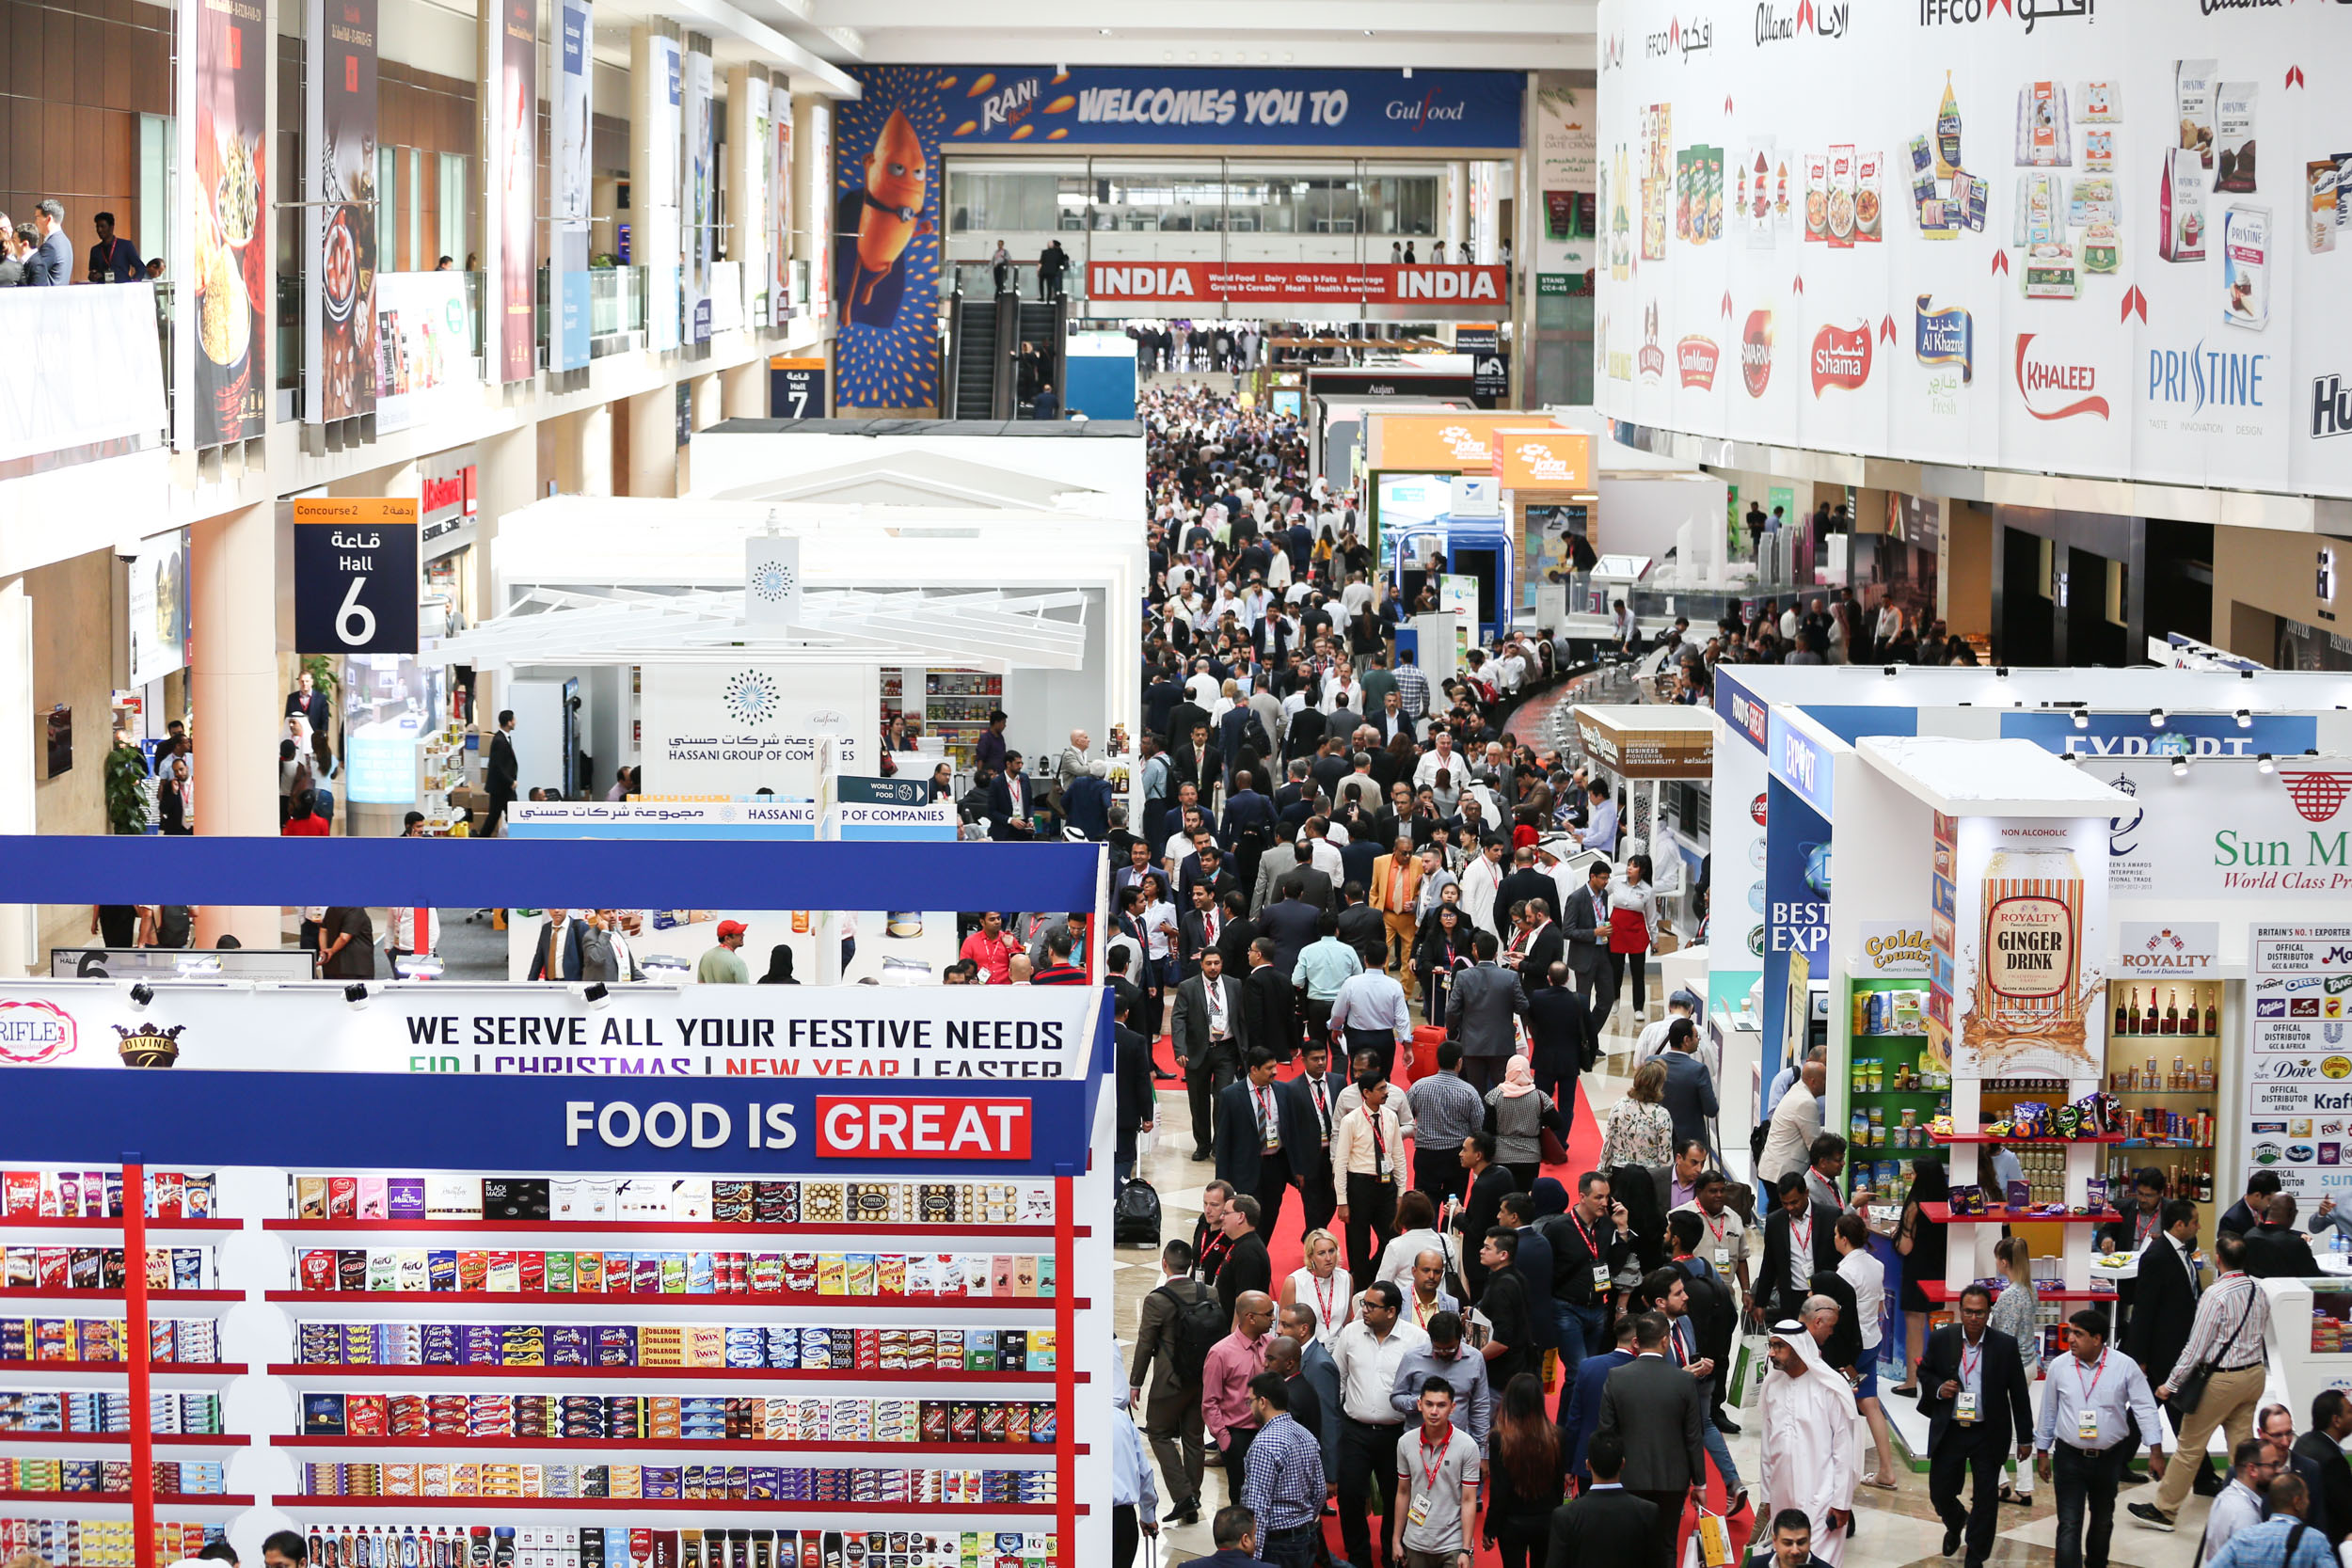 Image 03 - Gulfood - the world's largest annual food and beverage trade exhibition set to return in 2019